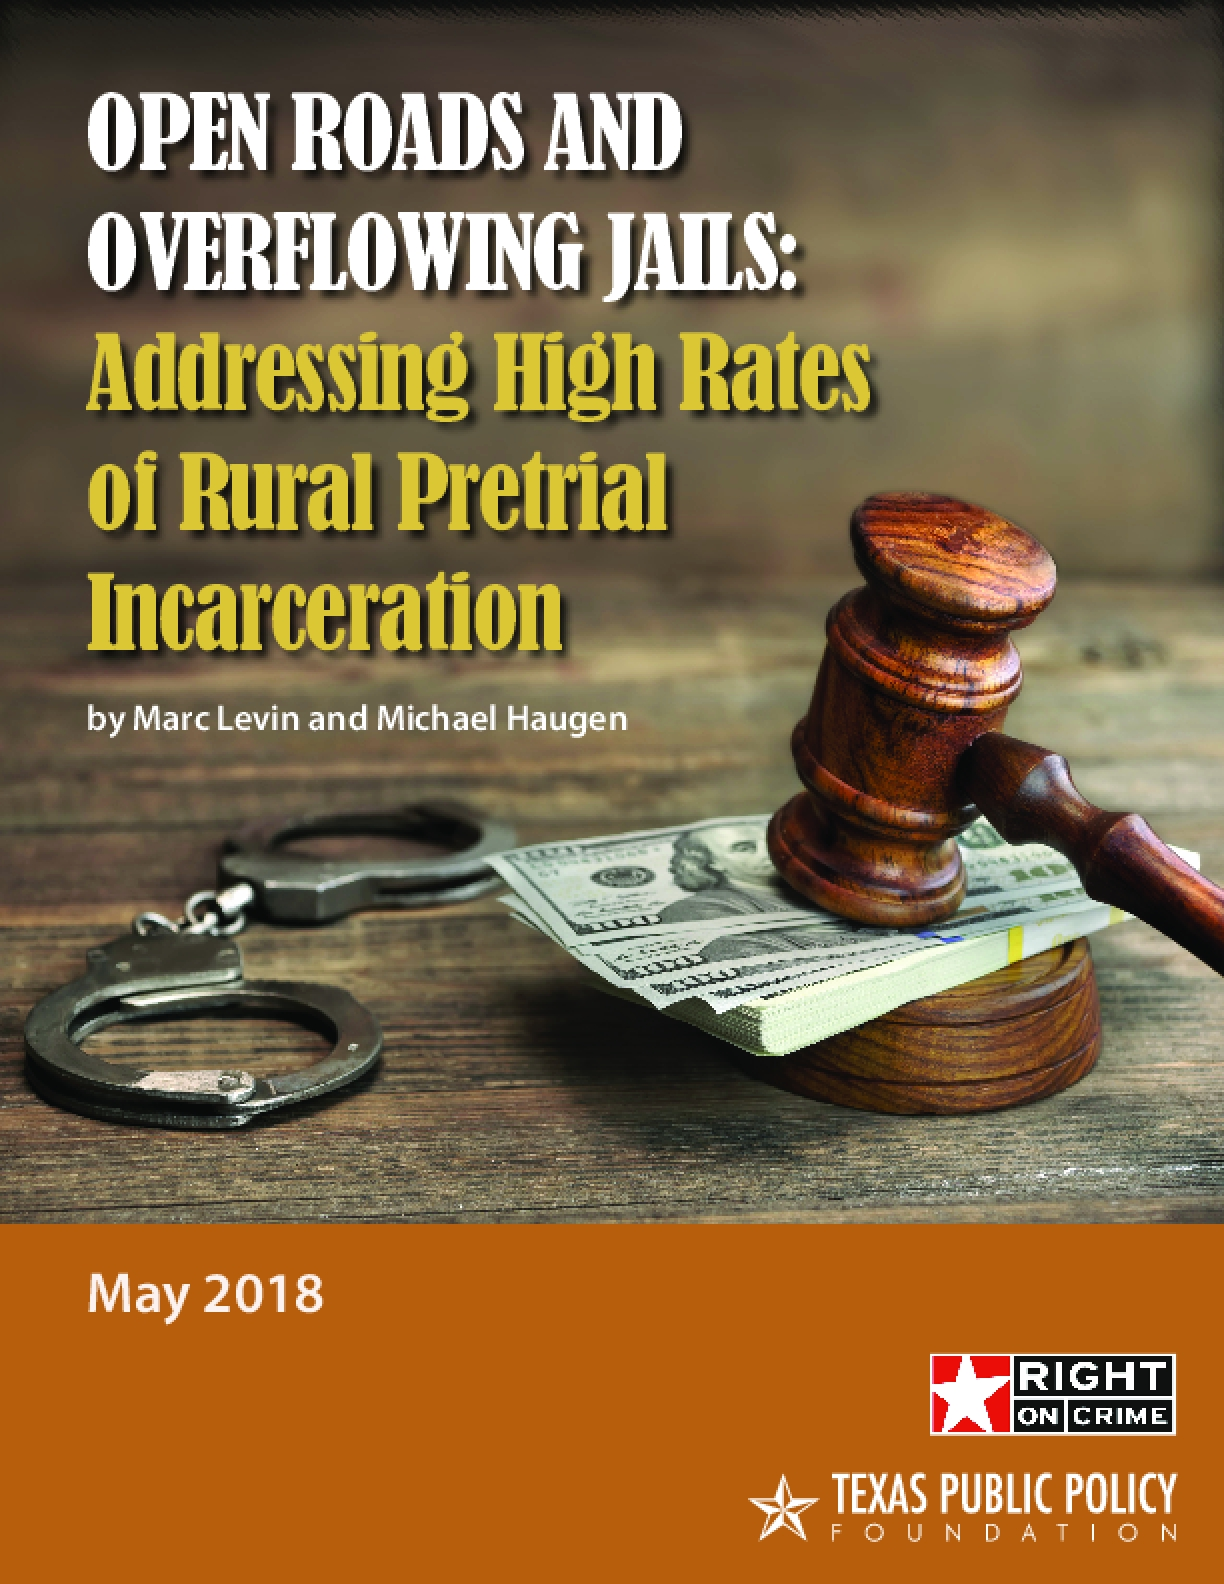 Open Roads and Overflowing Jails: Addressing High Rates of Rural Pretrial Incarceration